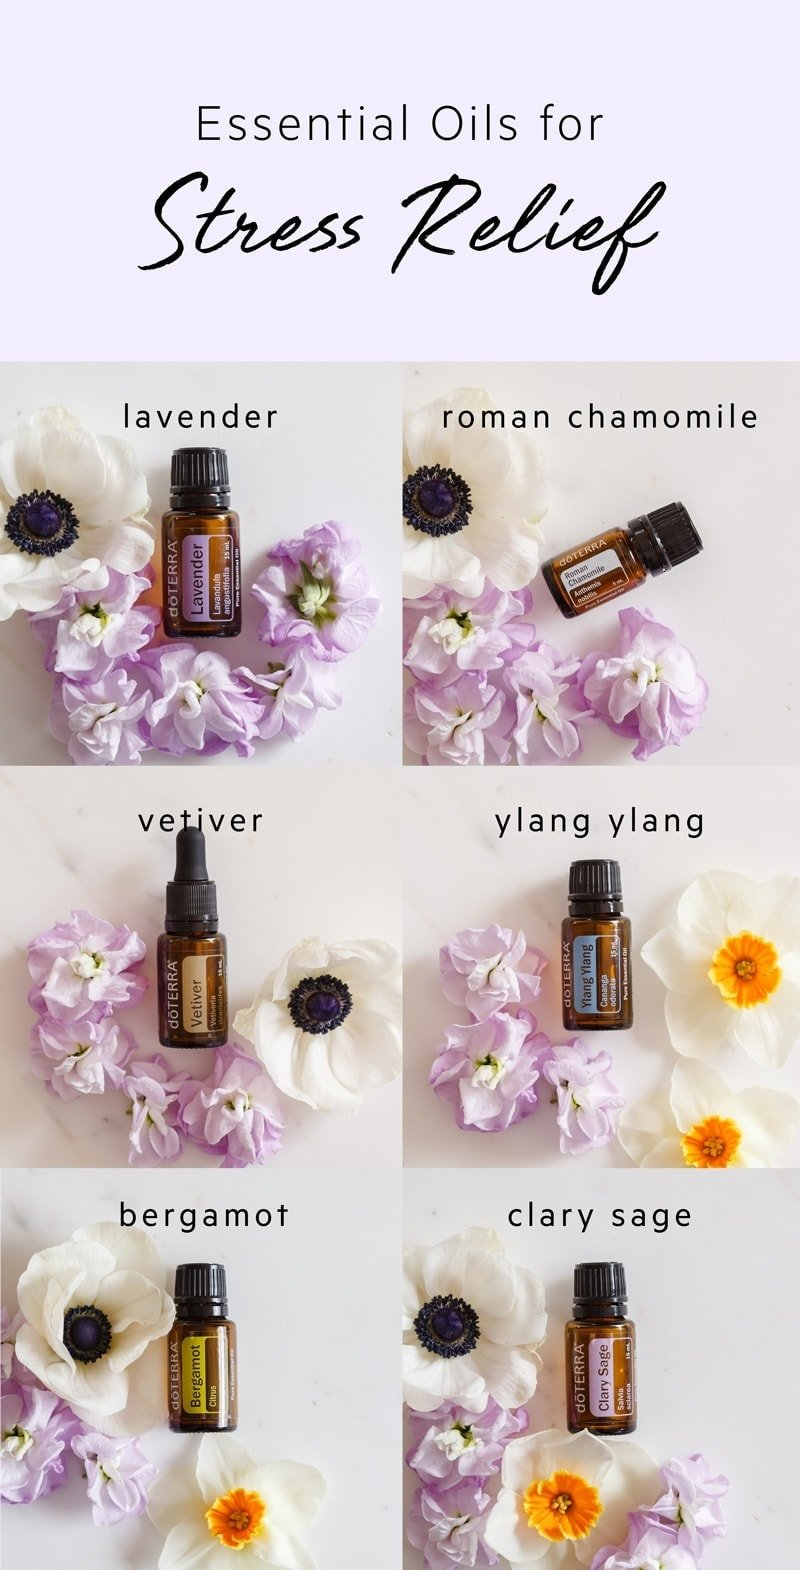 Top 6 Essential Oils for Stress and Relaxation + how to use them. #doterra #doterrarecipes #stress #essentialoilsdoterra #essentialoils #essentialoilsanxiety #essentialoilshealth #stressrelief #AscensionKitchen